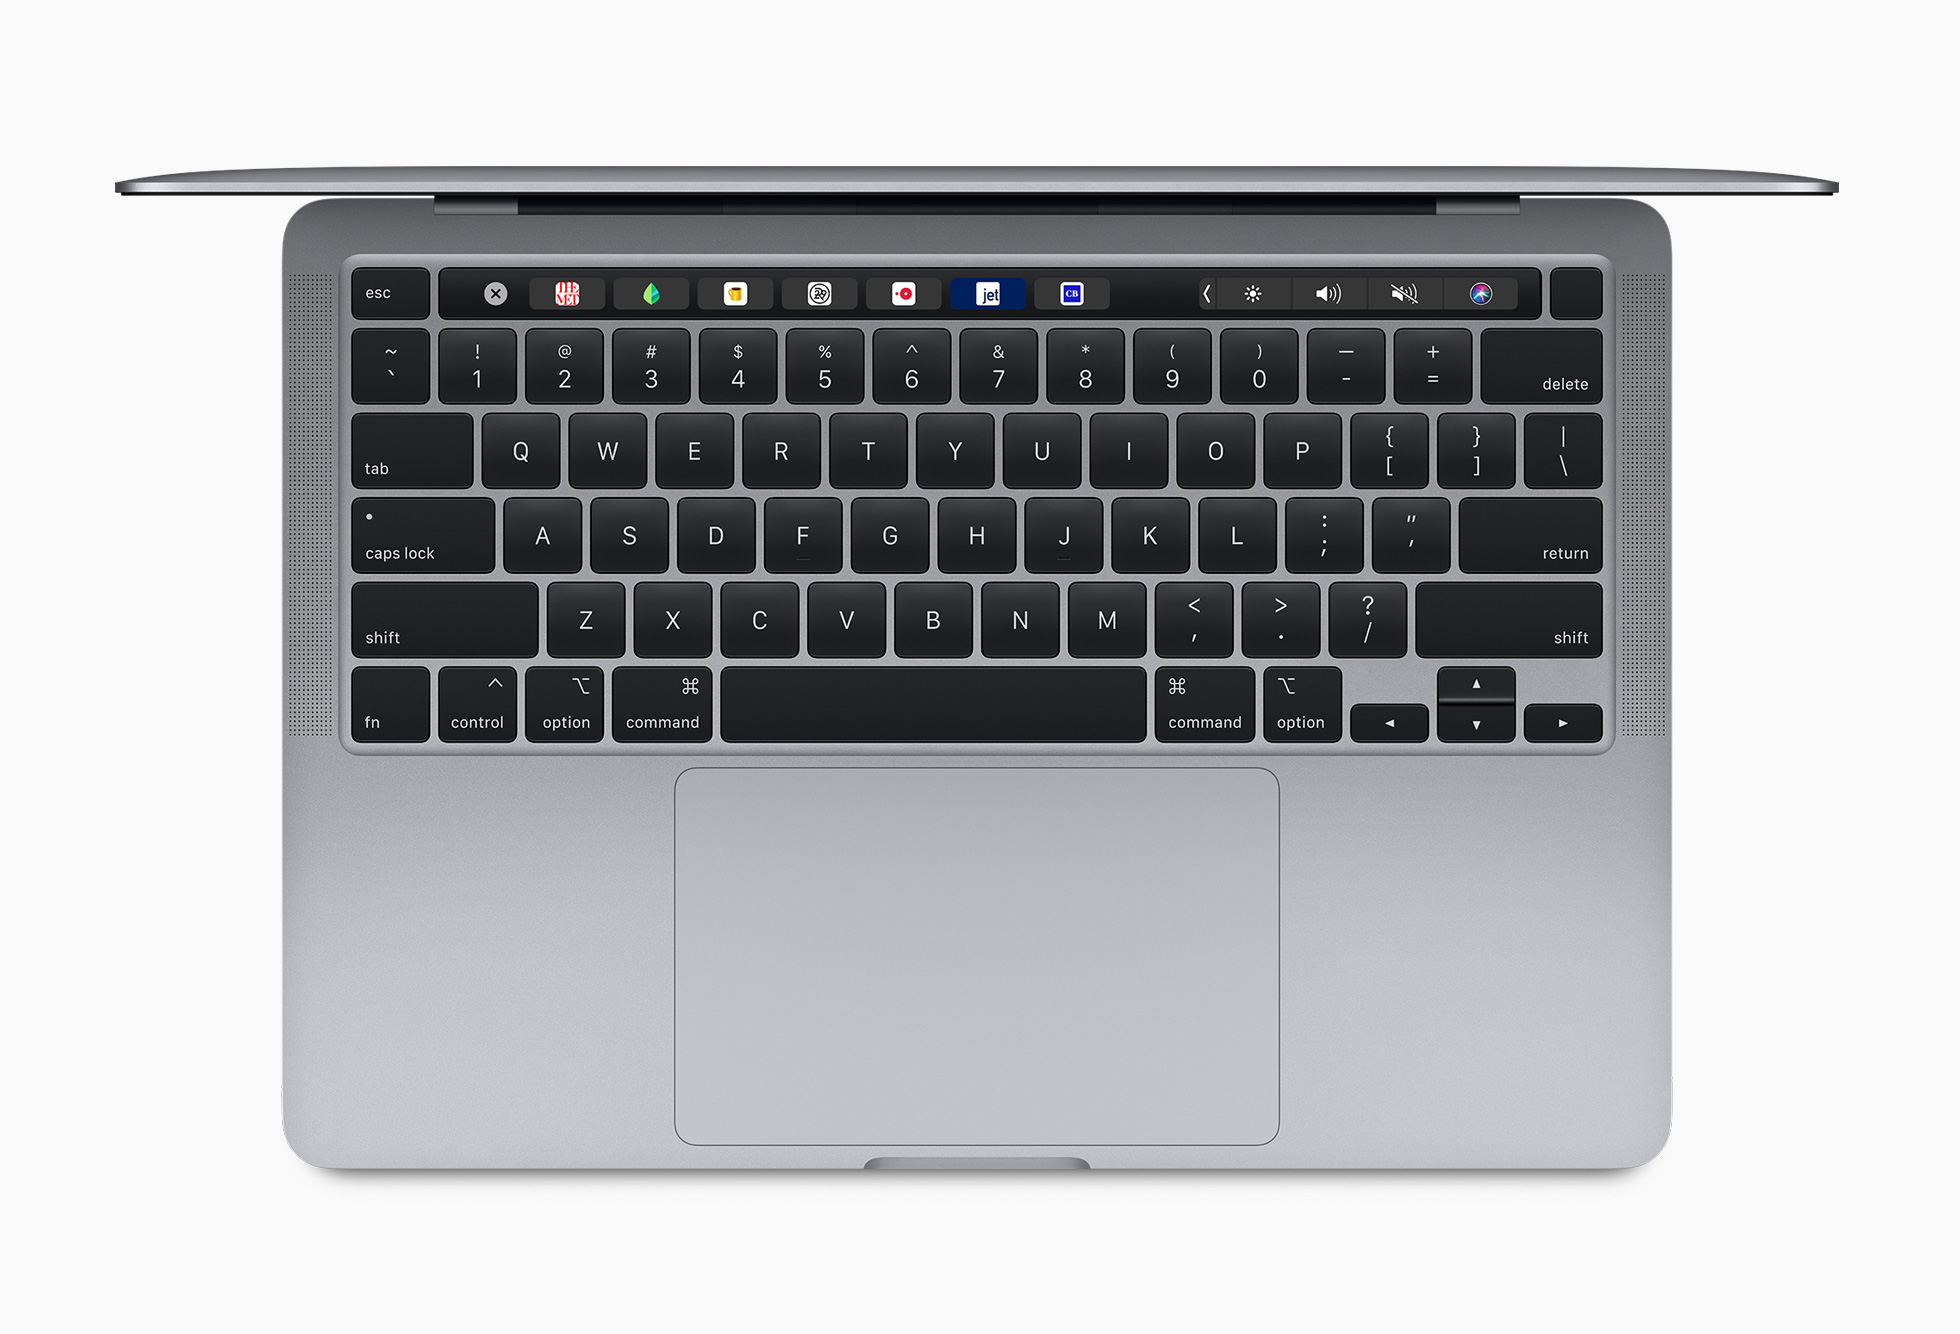 Apple_macbook_pro-13-inch-magic-keyboard_screen_05042020_big.jpg.large_2x.jpg